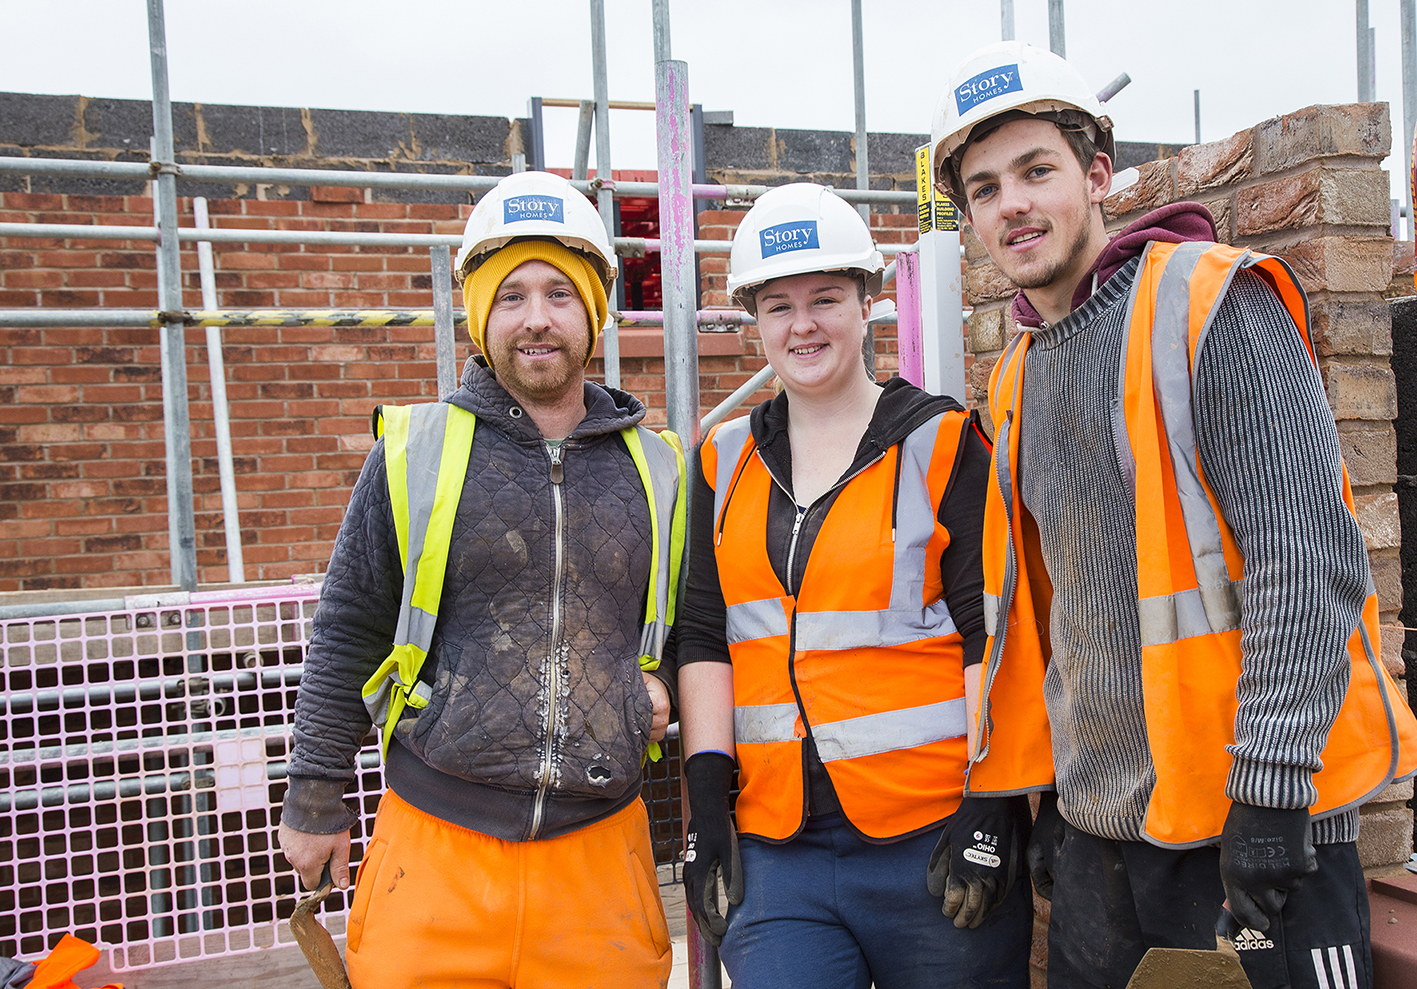 Story Homes welcomes its first female bricklayer as part of new apprentice intake